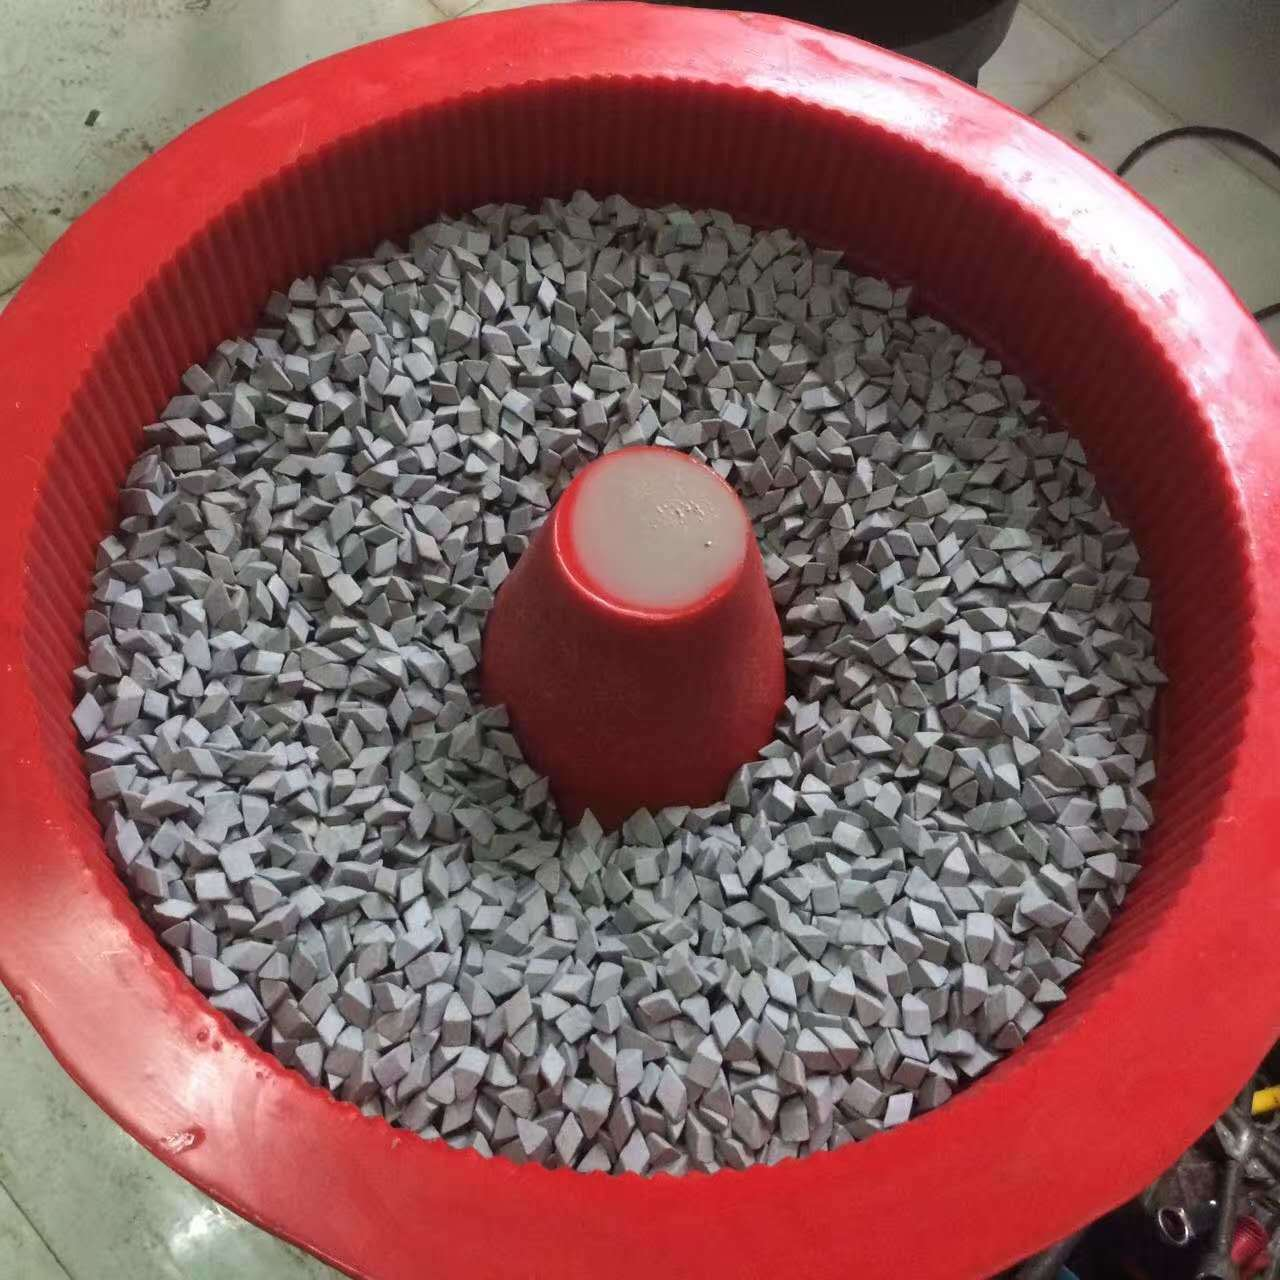 Vibratory-Finishing-System-for-Deburring-Washing-Rust-Prevention